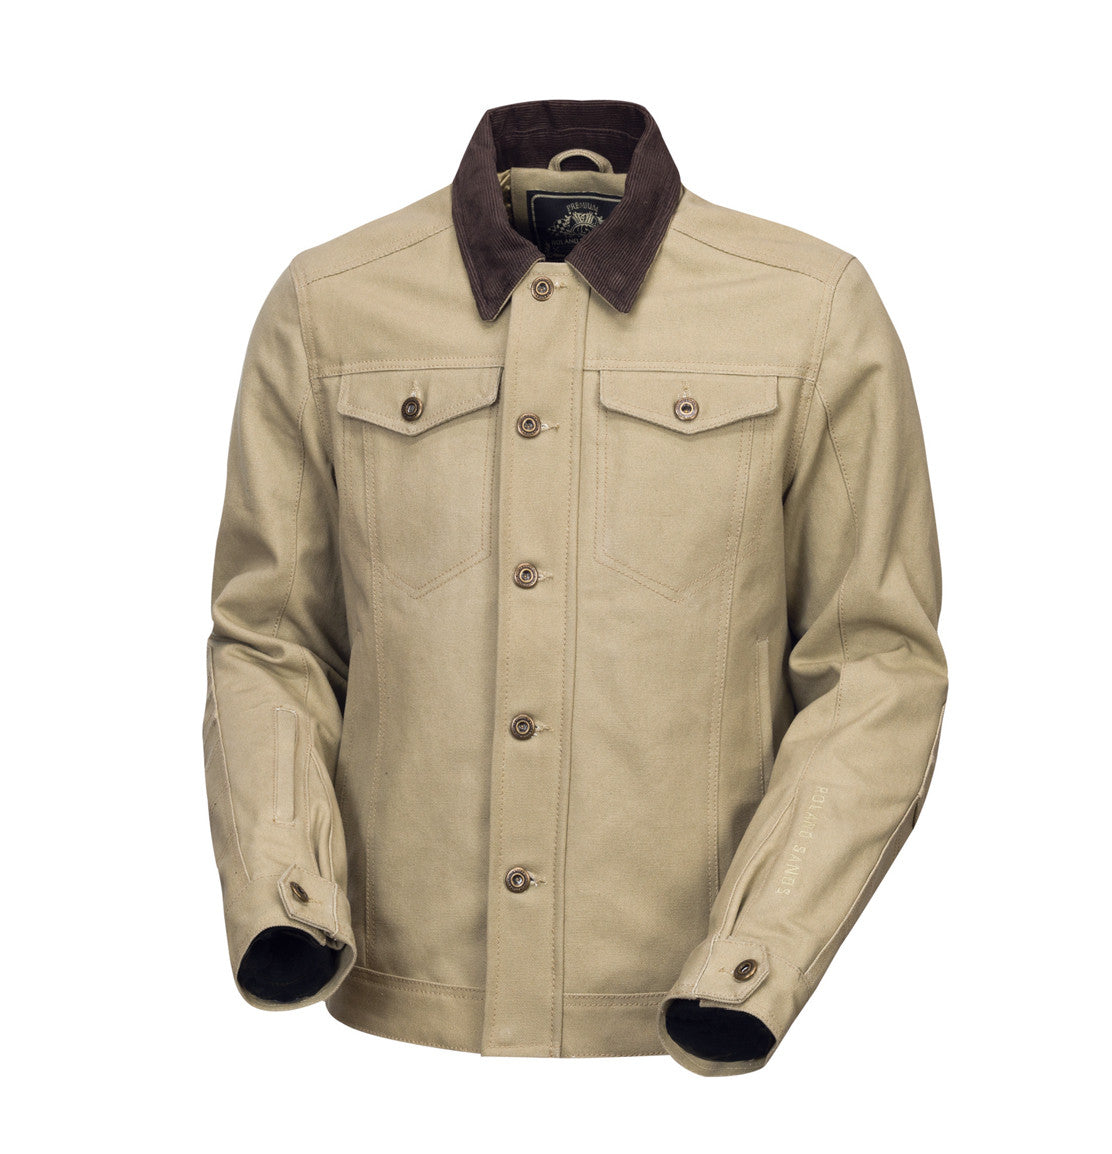 Roland Sands Design - Ramone - Khaki motorcycle jacket